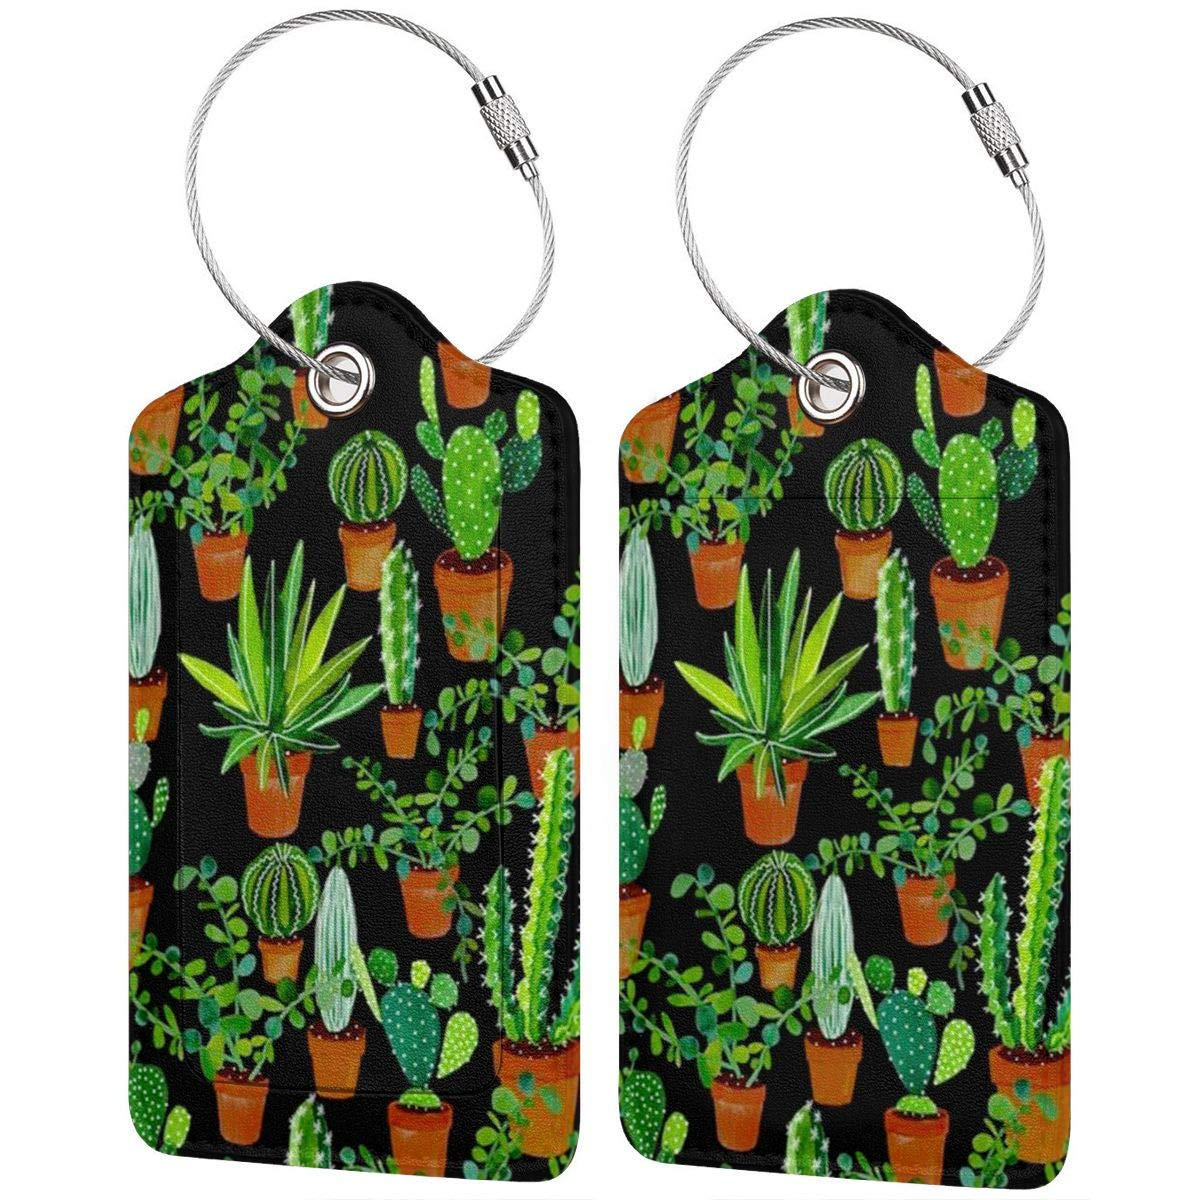 Cactus Flower Luggage Tags With Full Back Privacy Cover W//Steel Loops